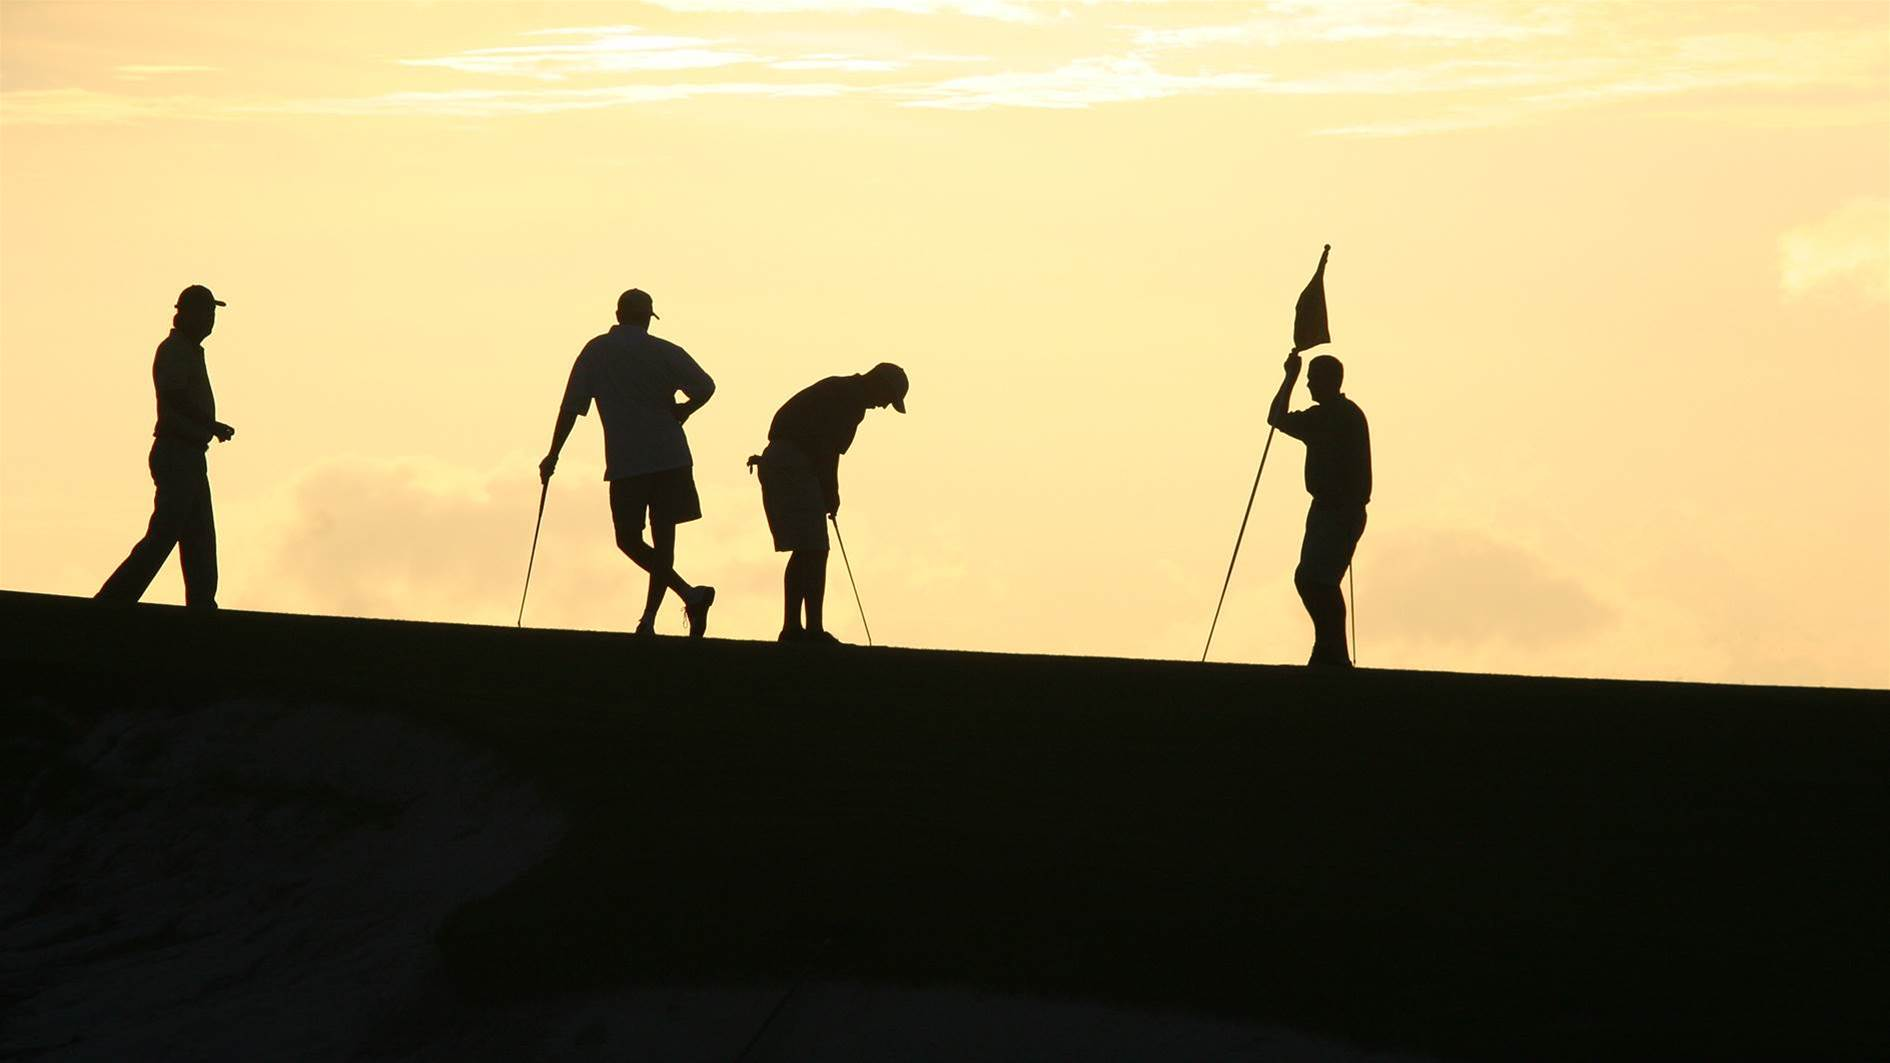 DADDO: Golf and the unbreakable bond